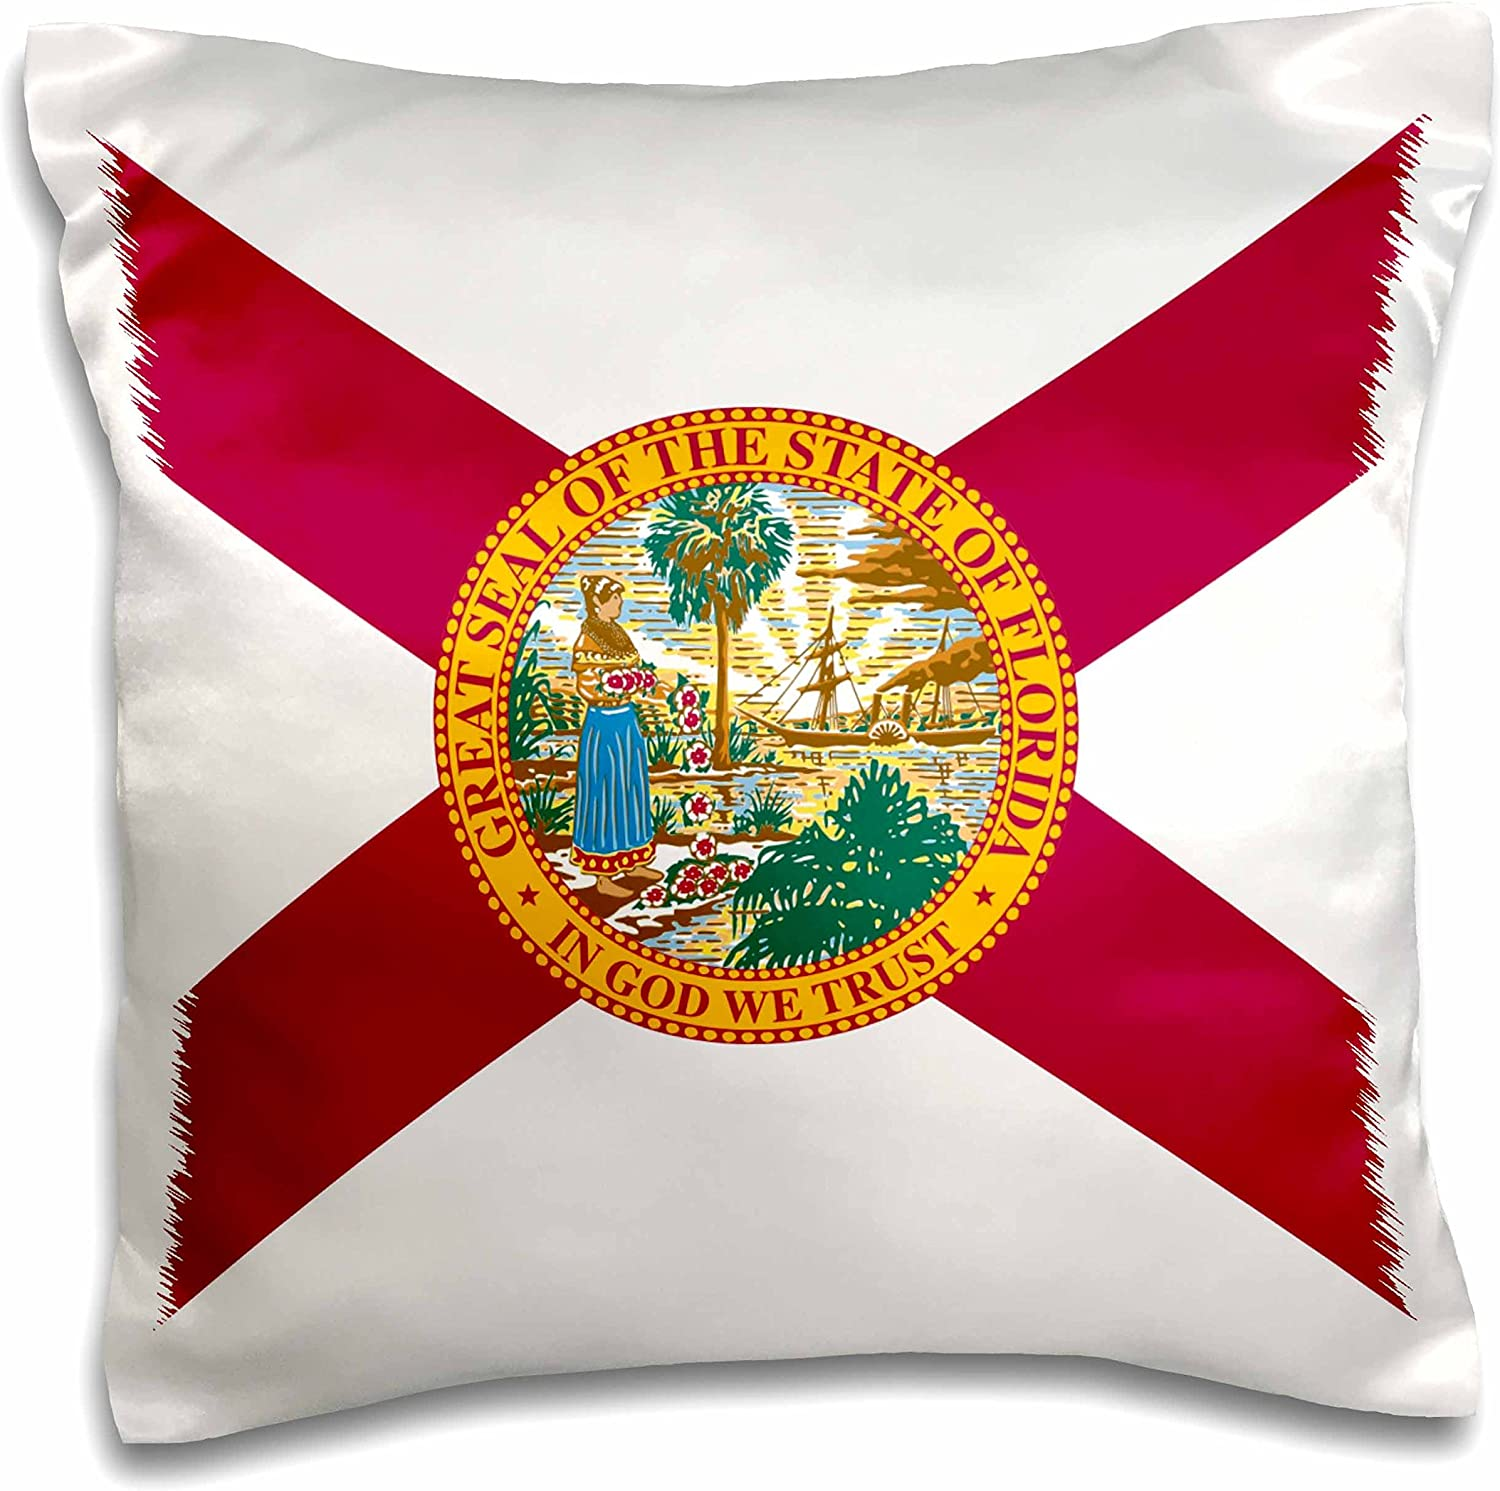 Amazon Com 3drose Flag Of Florida Us American State United States Of America Usa Red Cross With State Seal Pillow Case 16 By 16 Inch Pc 158317 1 Home Kitchen